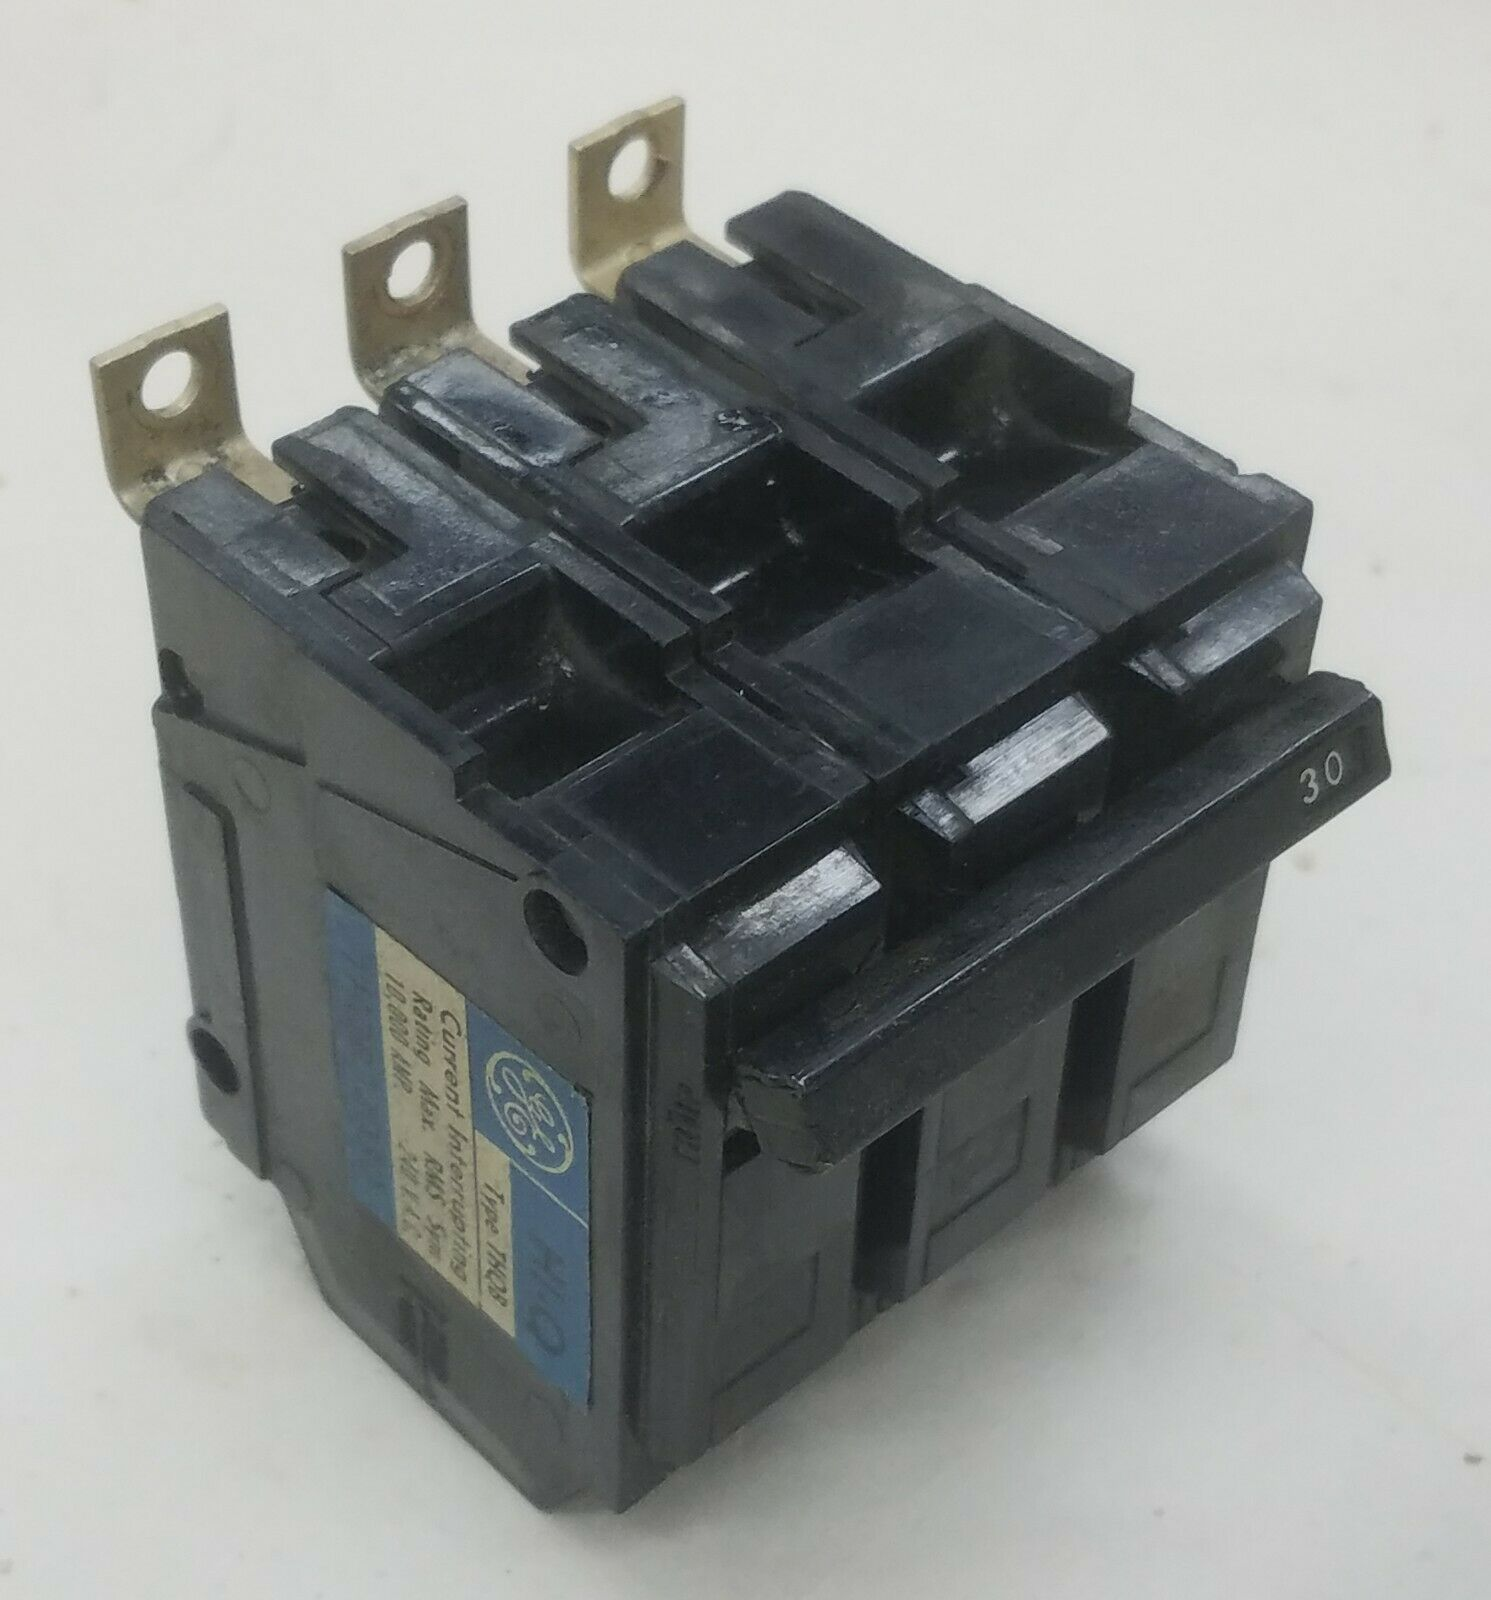 General Electric THQB32030 3 Pole Circuit Breaker 30a 240v for sale online